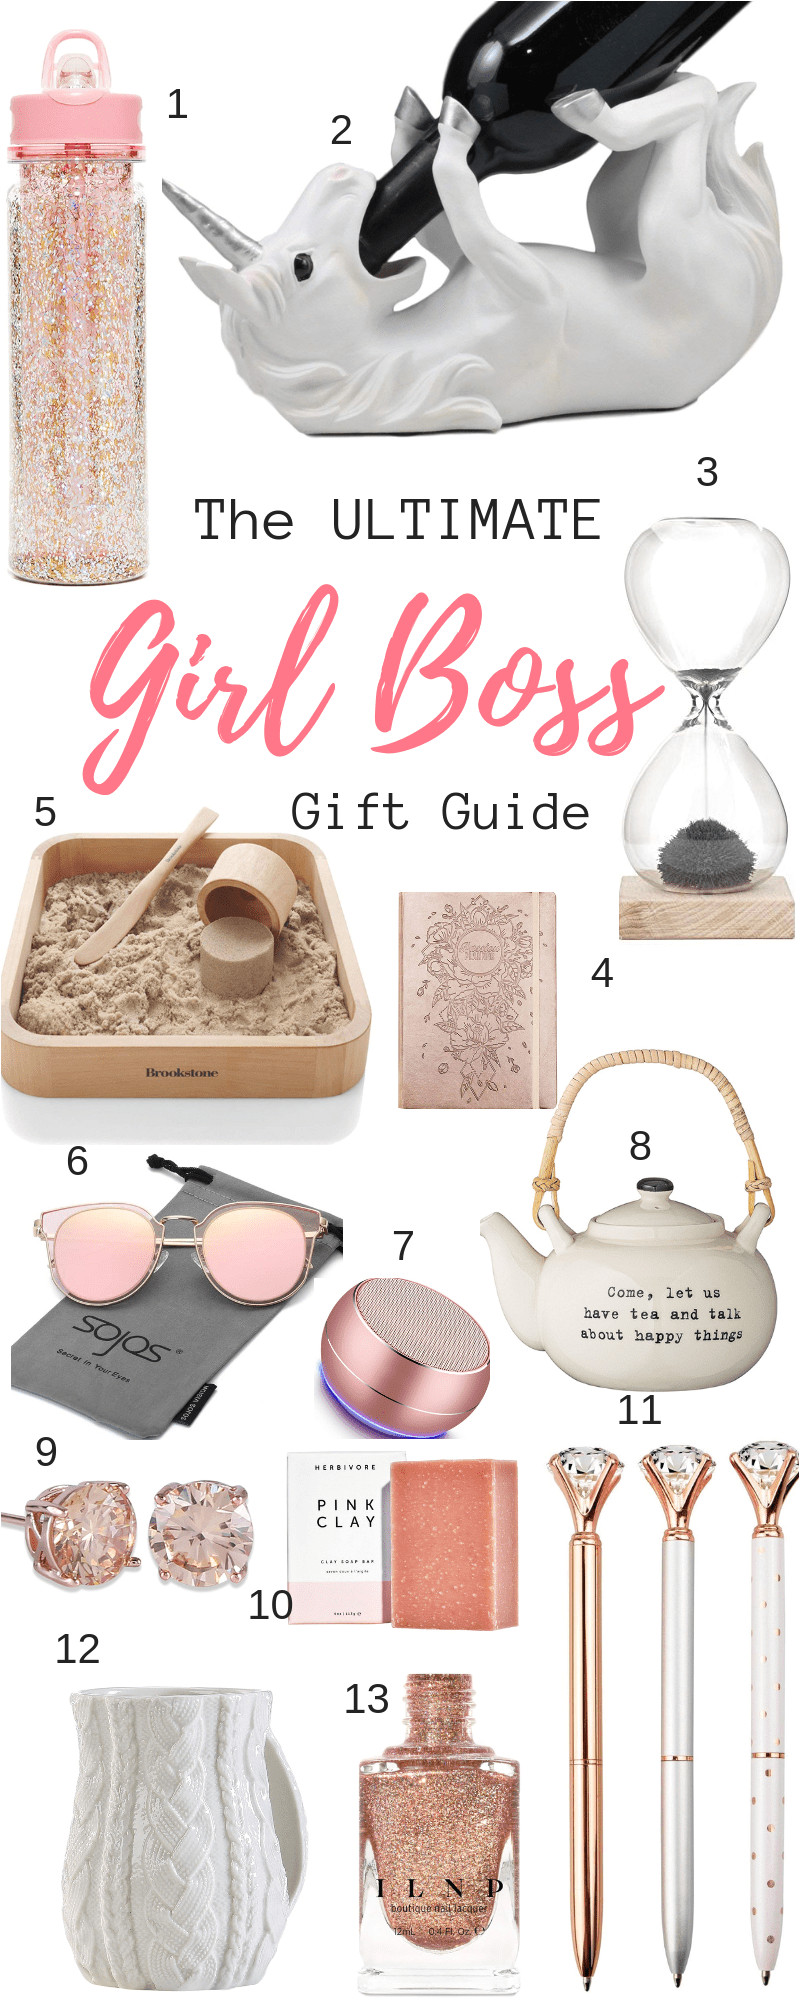 giftguide christmas shopping you ve still got black friday and cyber monday to contend with but this list has something the hard to buy for women on your